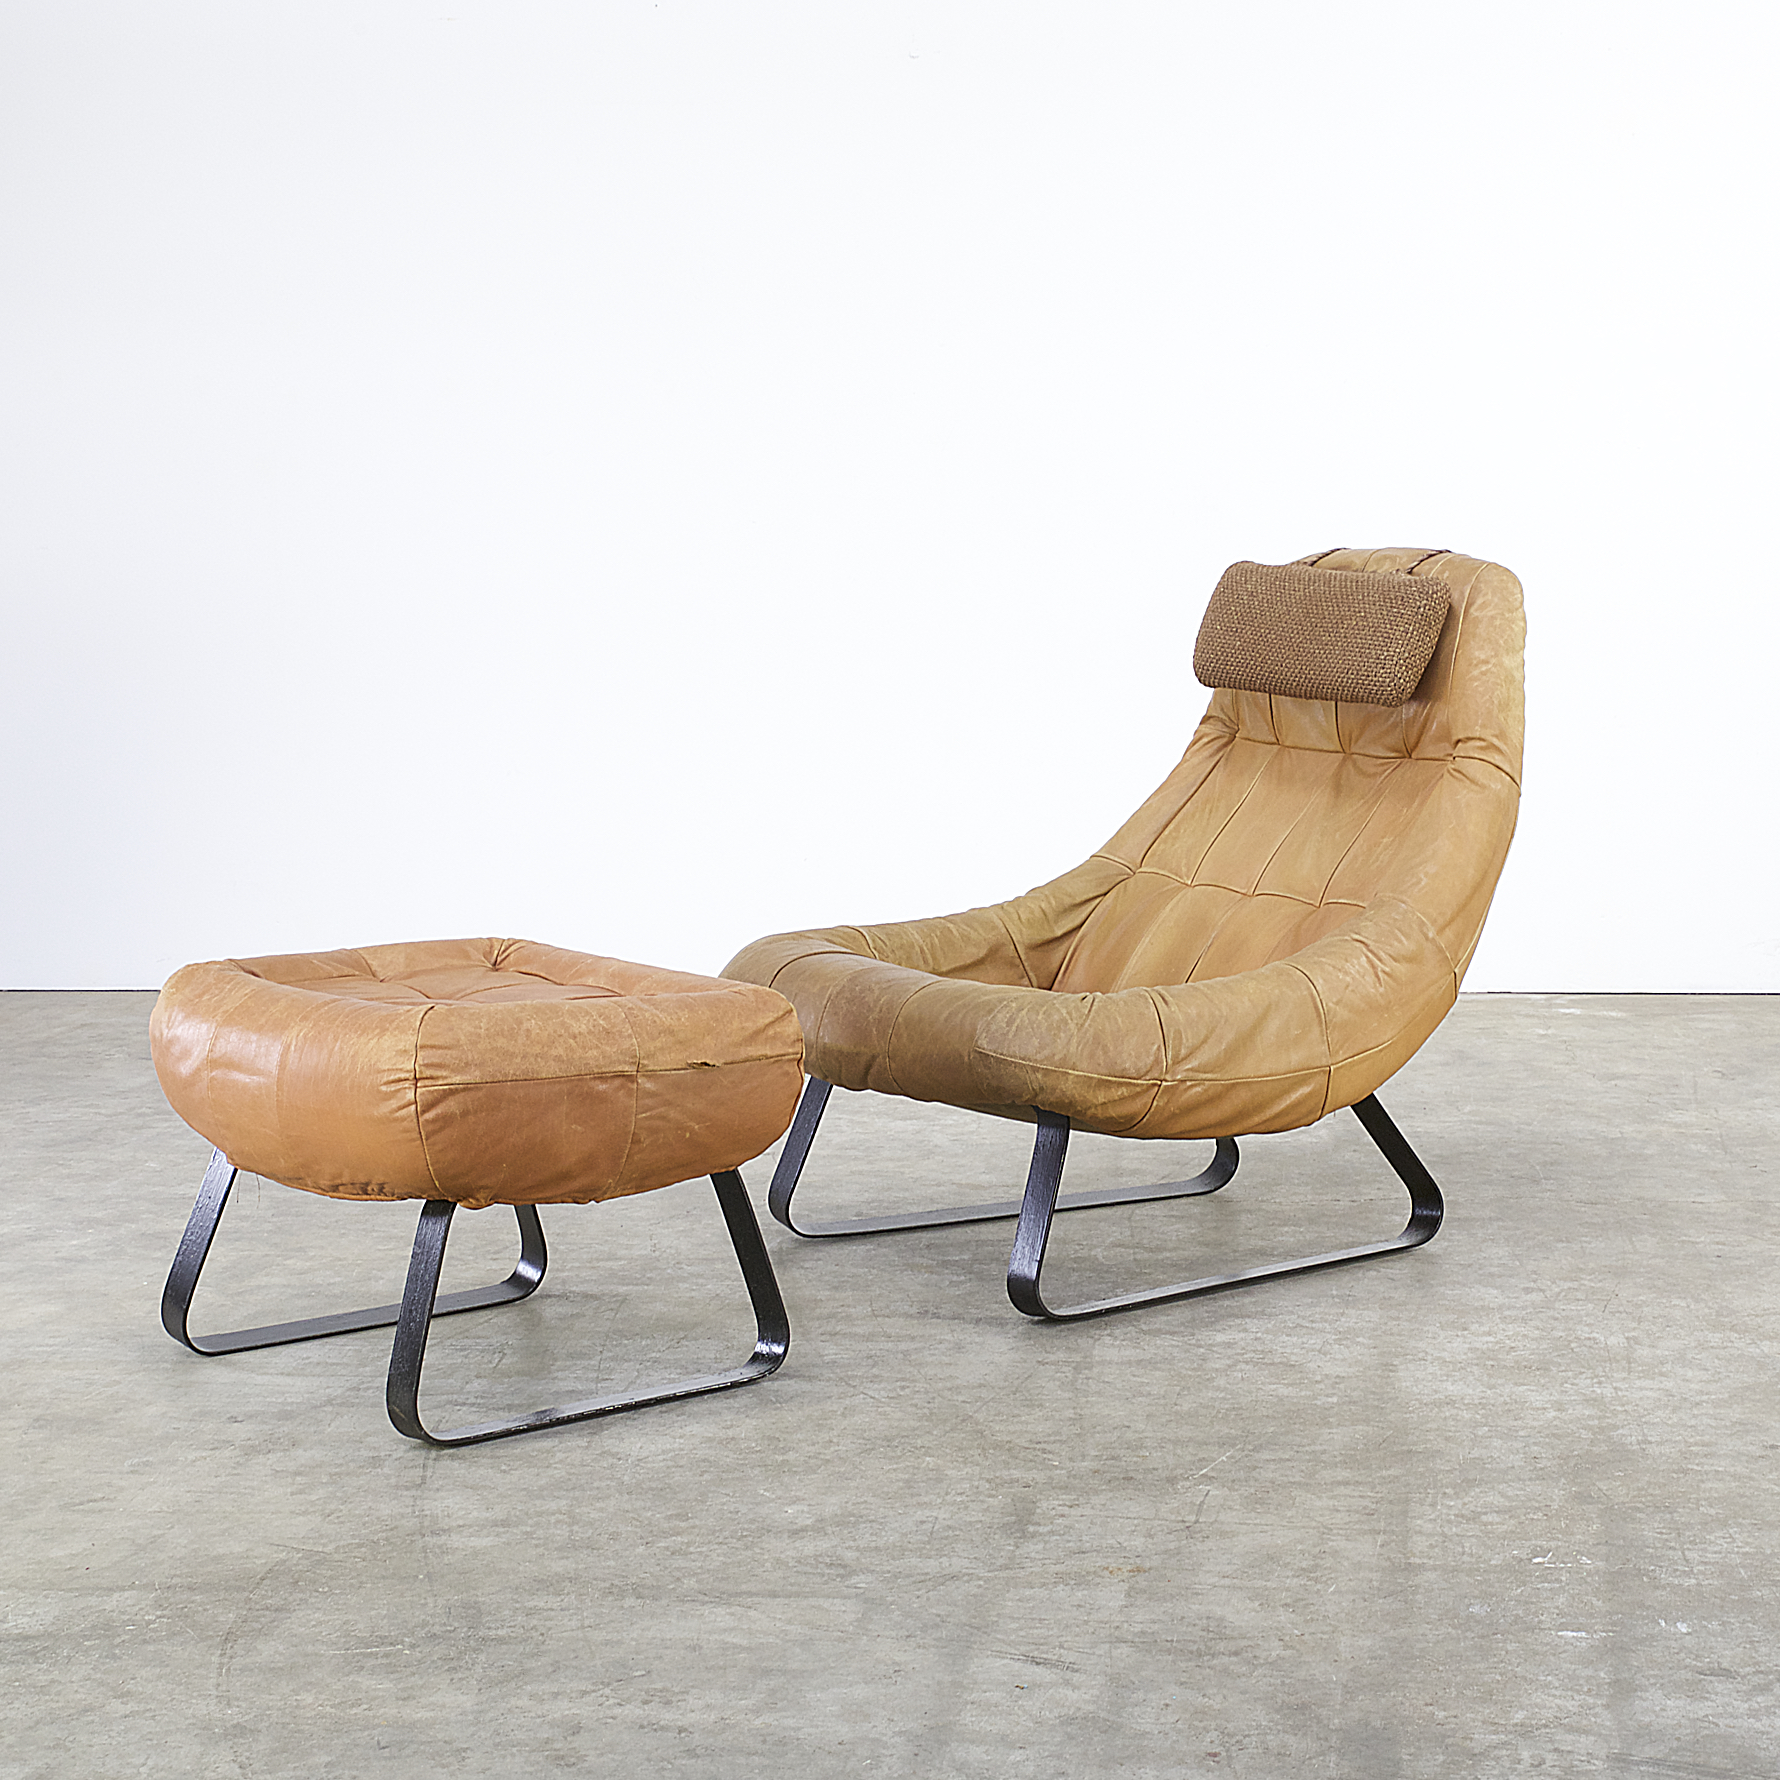 60s percival lafer earth chair collection fauteuil ottoman barbmama. Black Bedroom Furniture Sets. Home Design Ideas